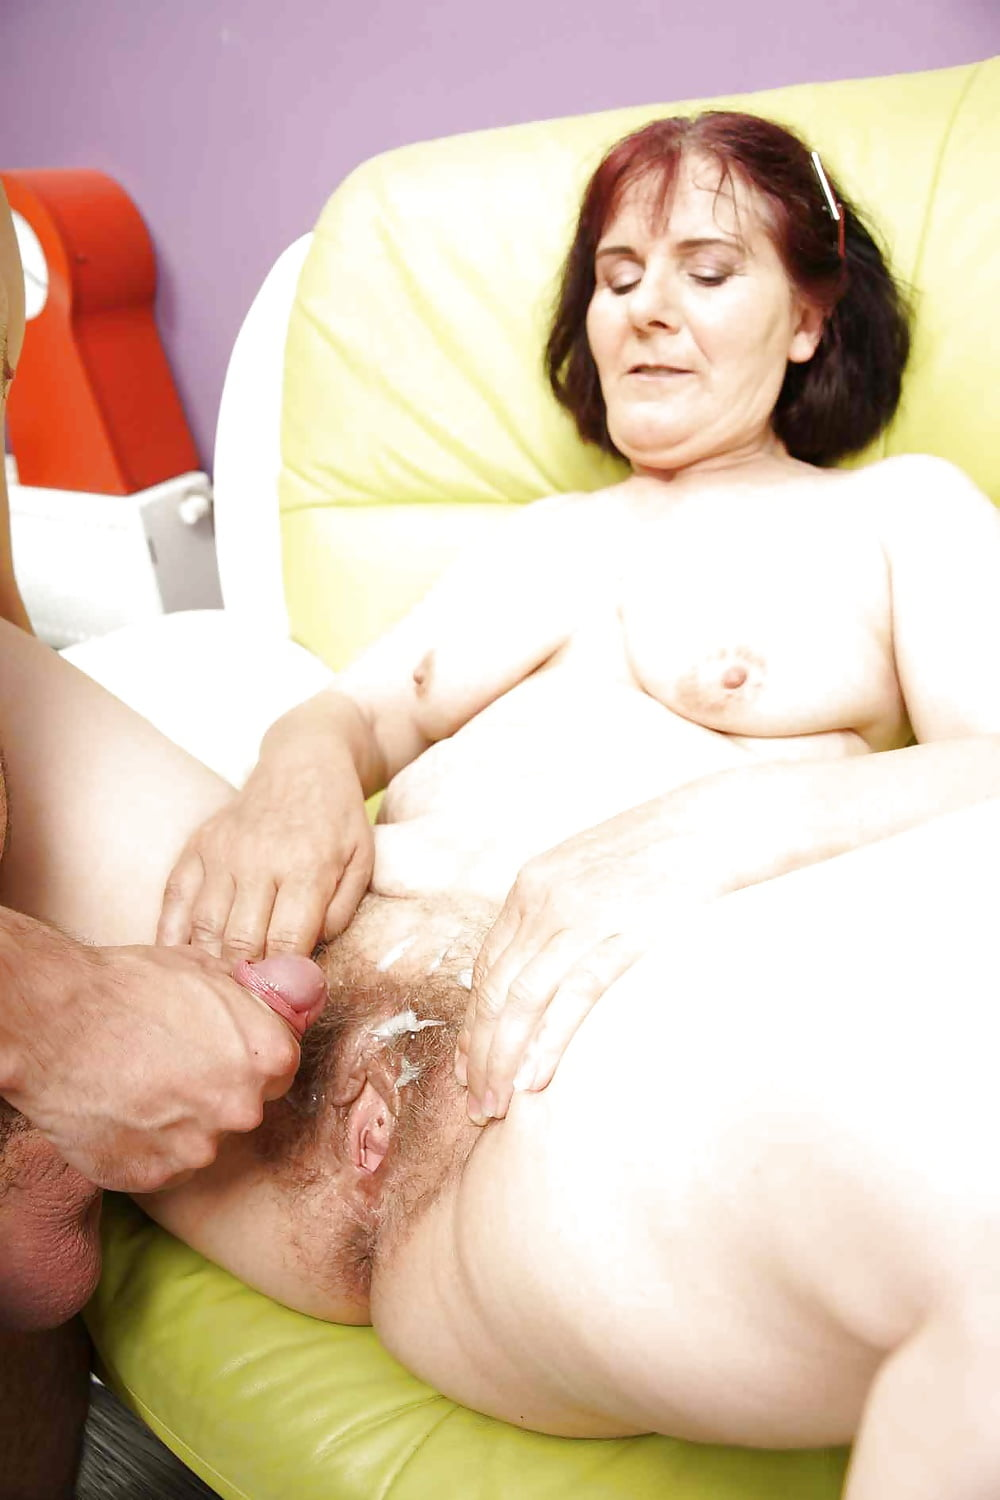 old-pass-spunktures-men-fucking-vaginas-gif